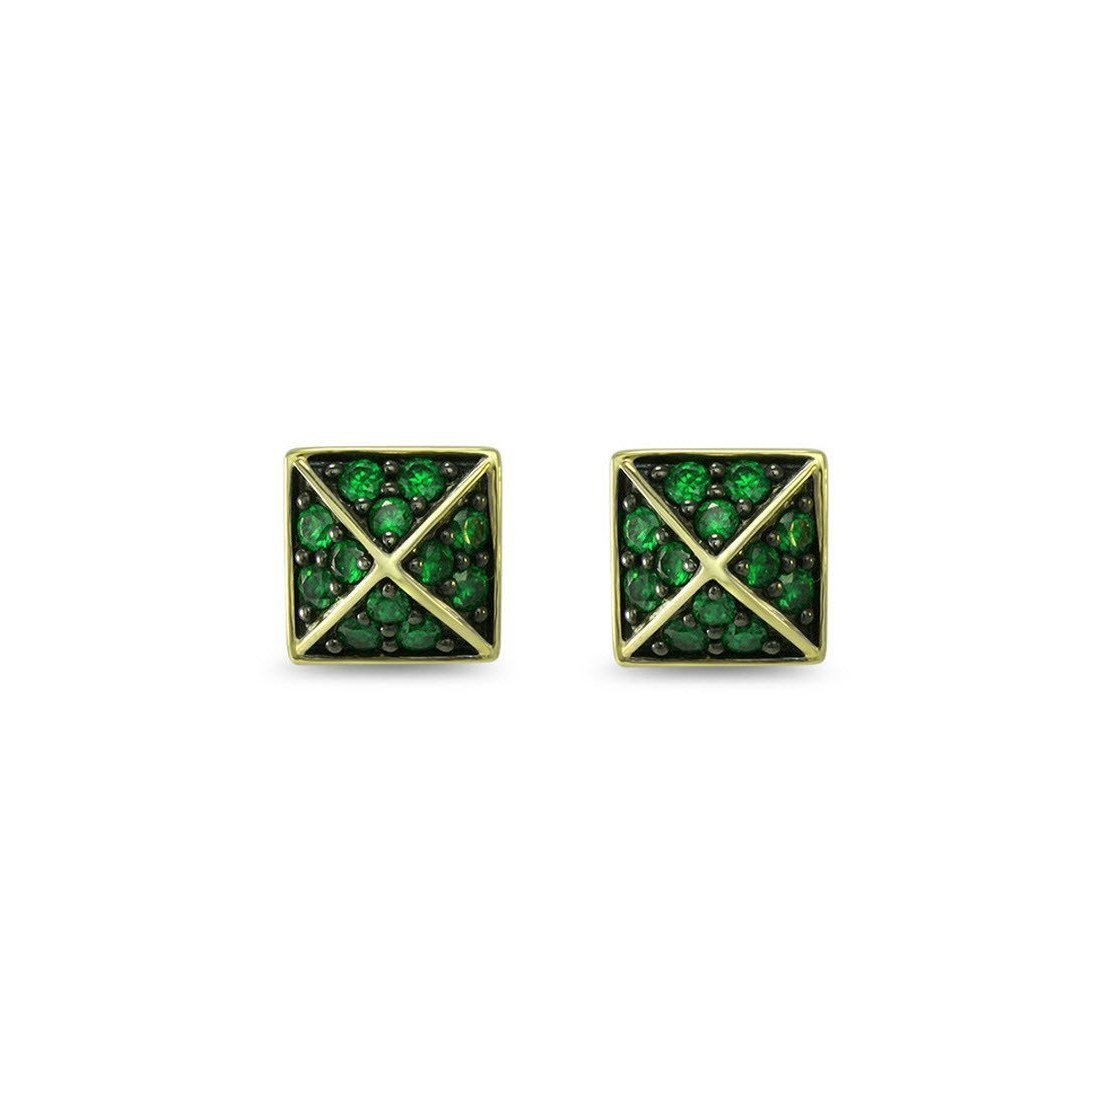 Empire Pave Square Stud Earring-Earrings-REALM-JewelStreet